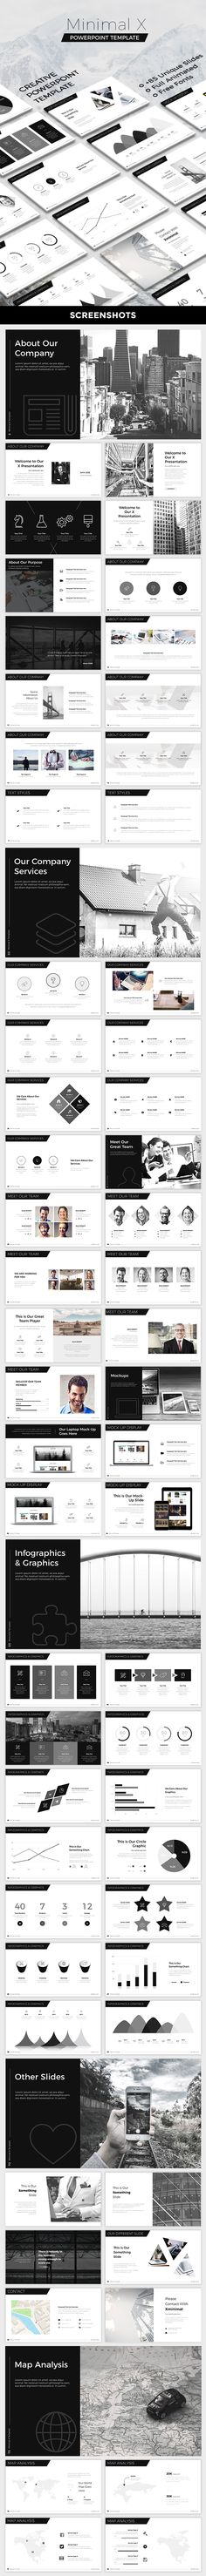 Minimal X Powerpoint Template - Creative #PowerPoint #Templates Download here: https://graphicriver.net/item/minimal-x-powerpoint-template/19598439?ref=alena994